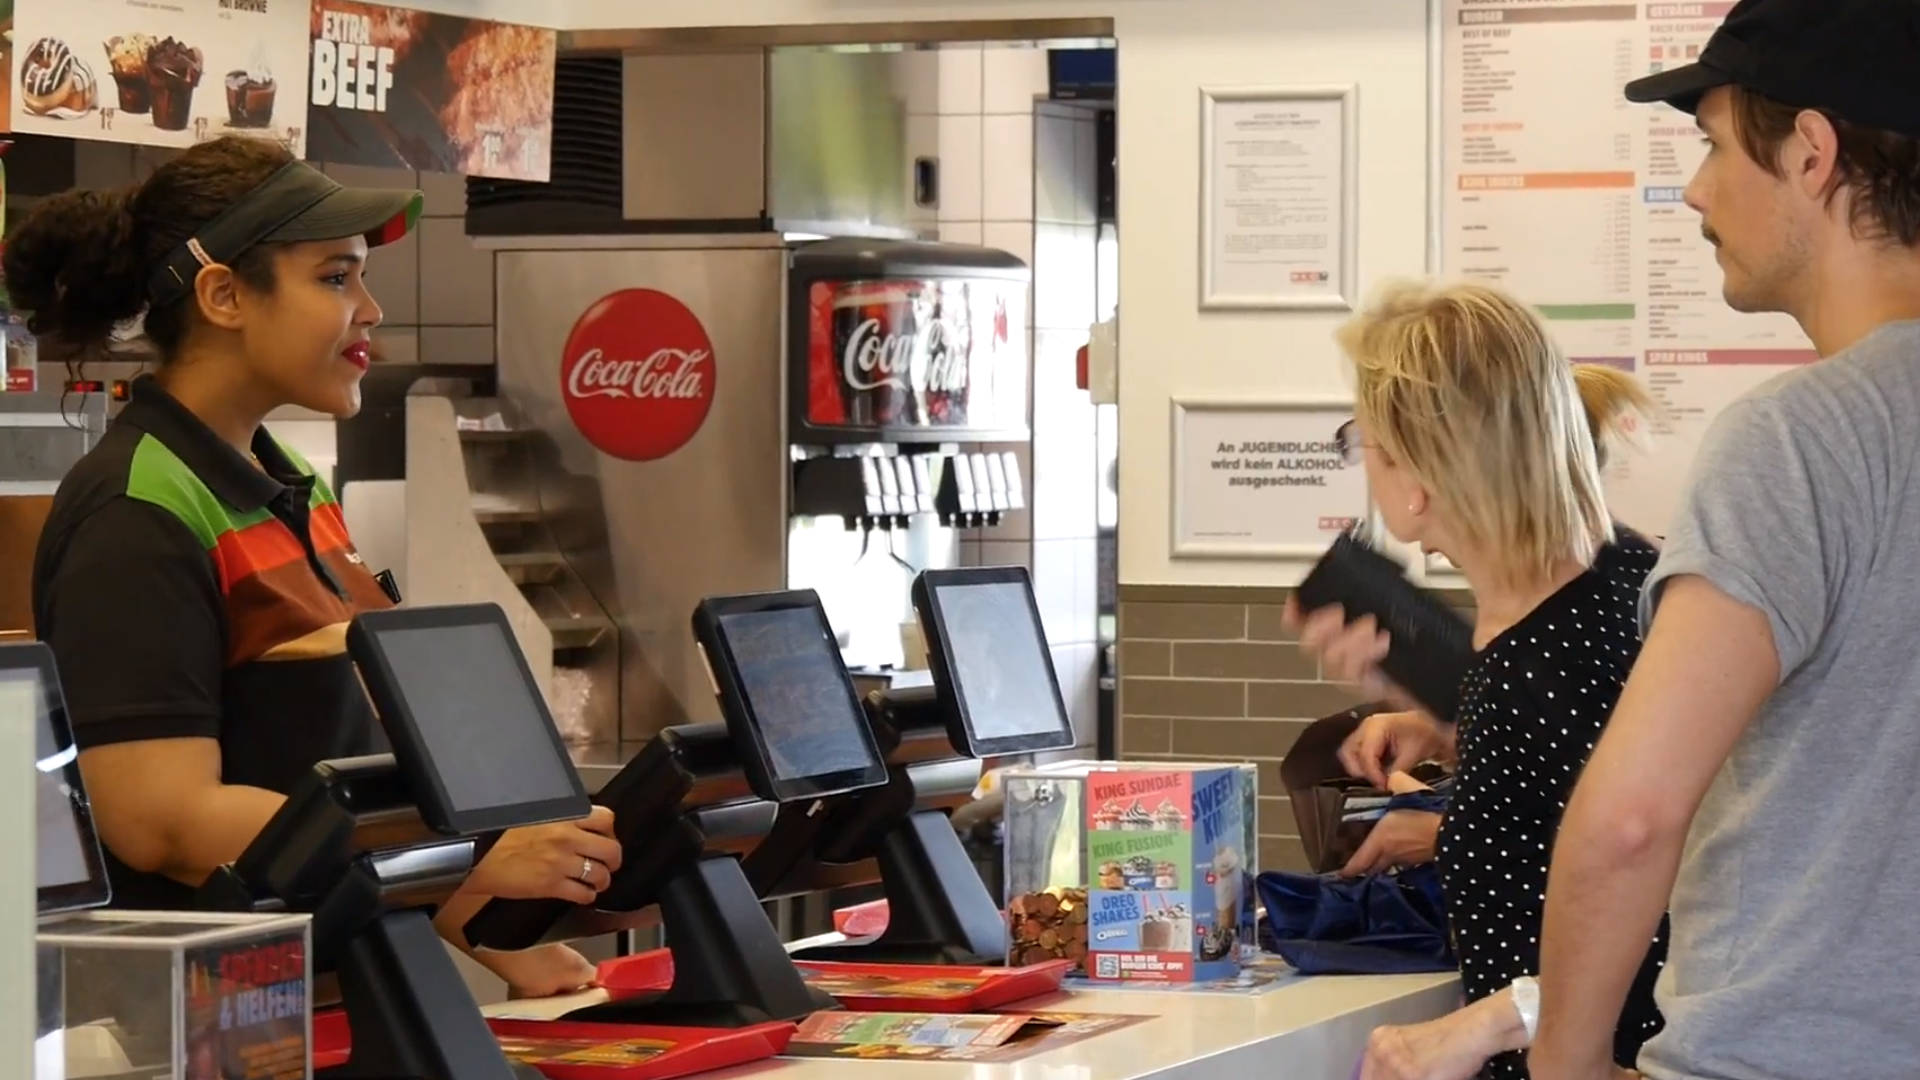 Do you know how Papershift makes Burger King employees smile?